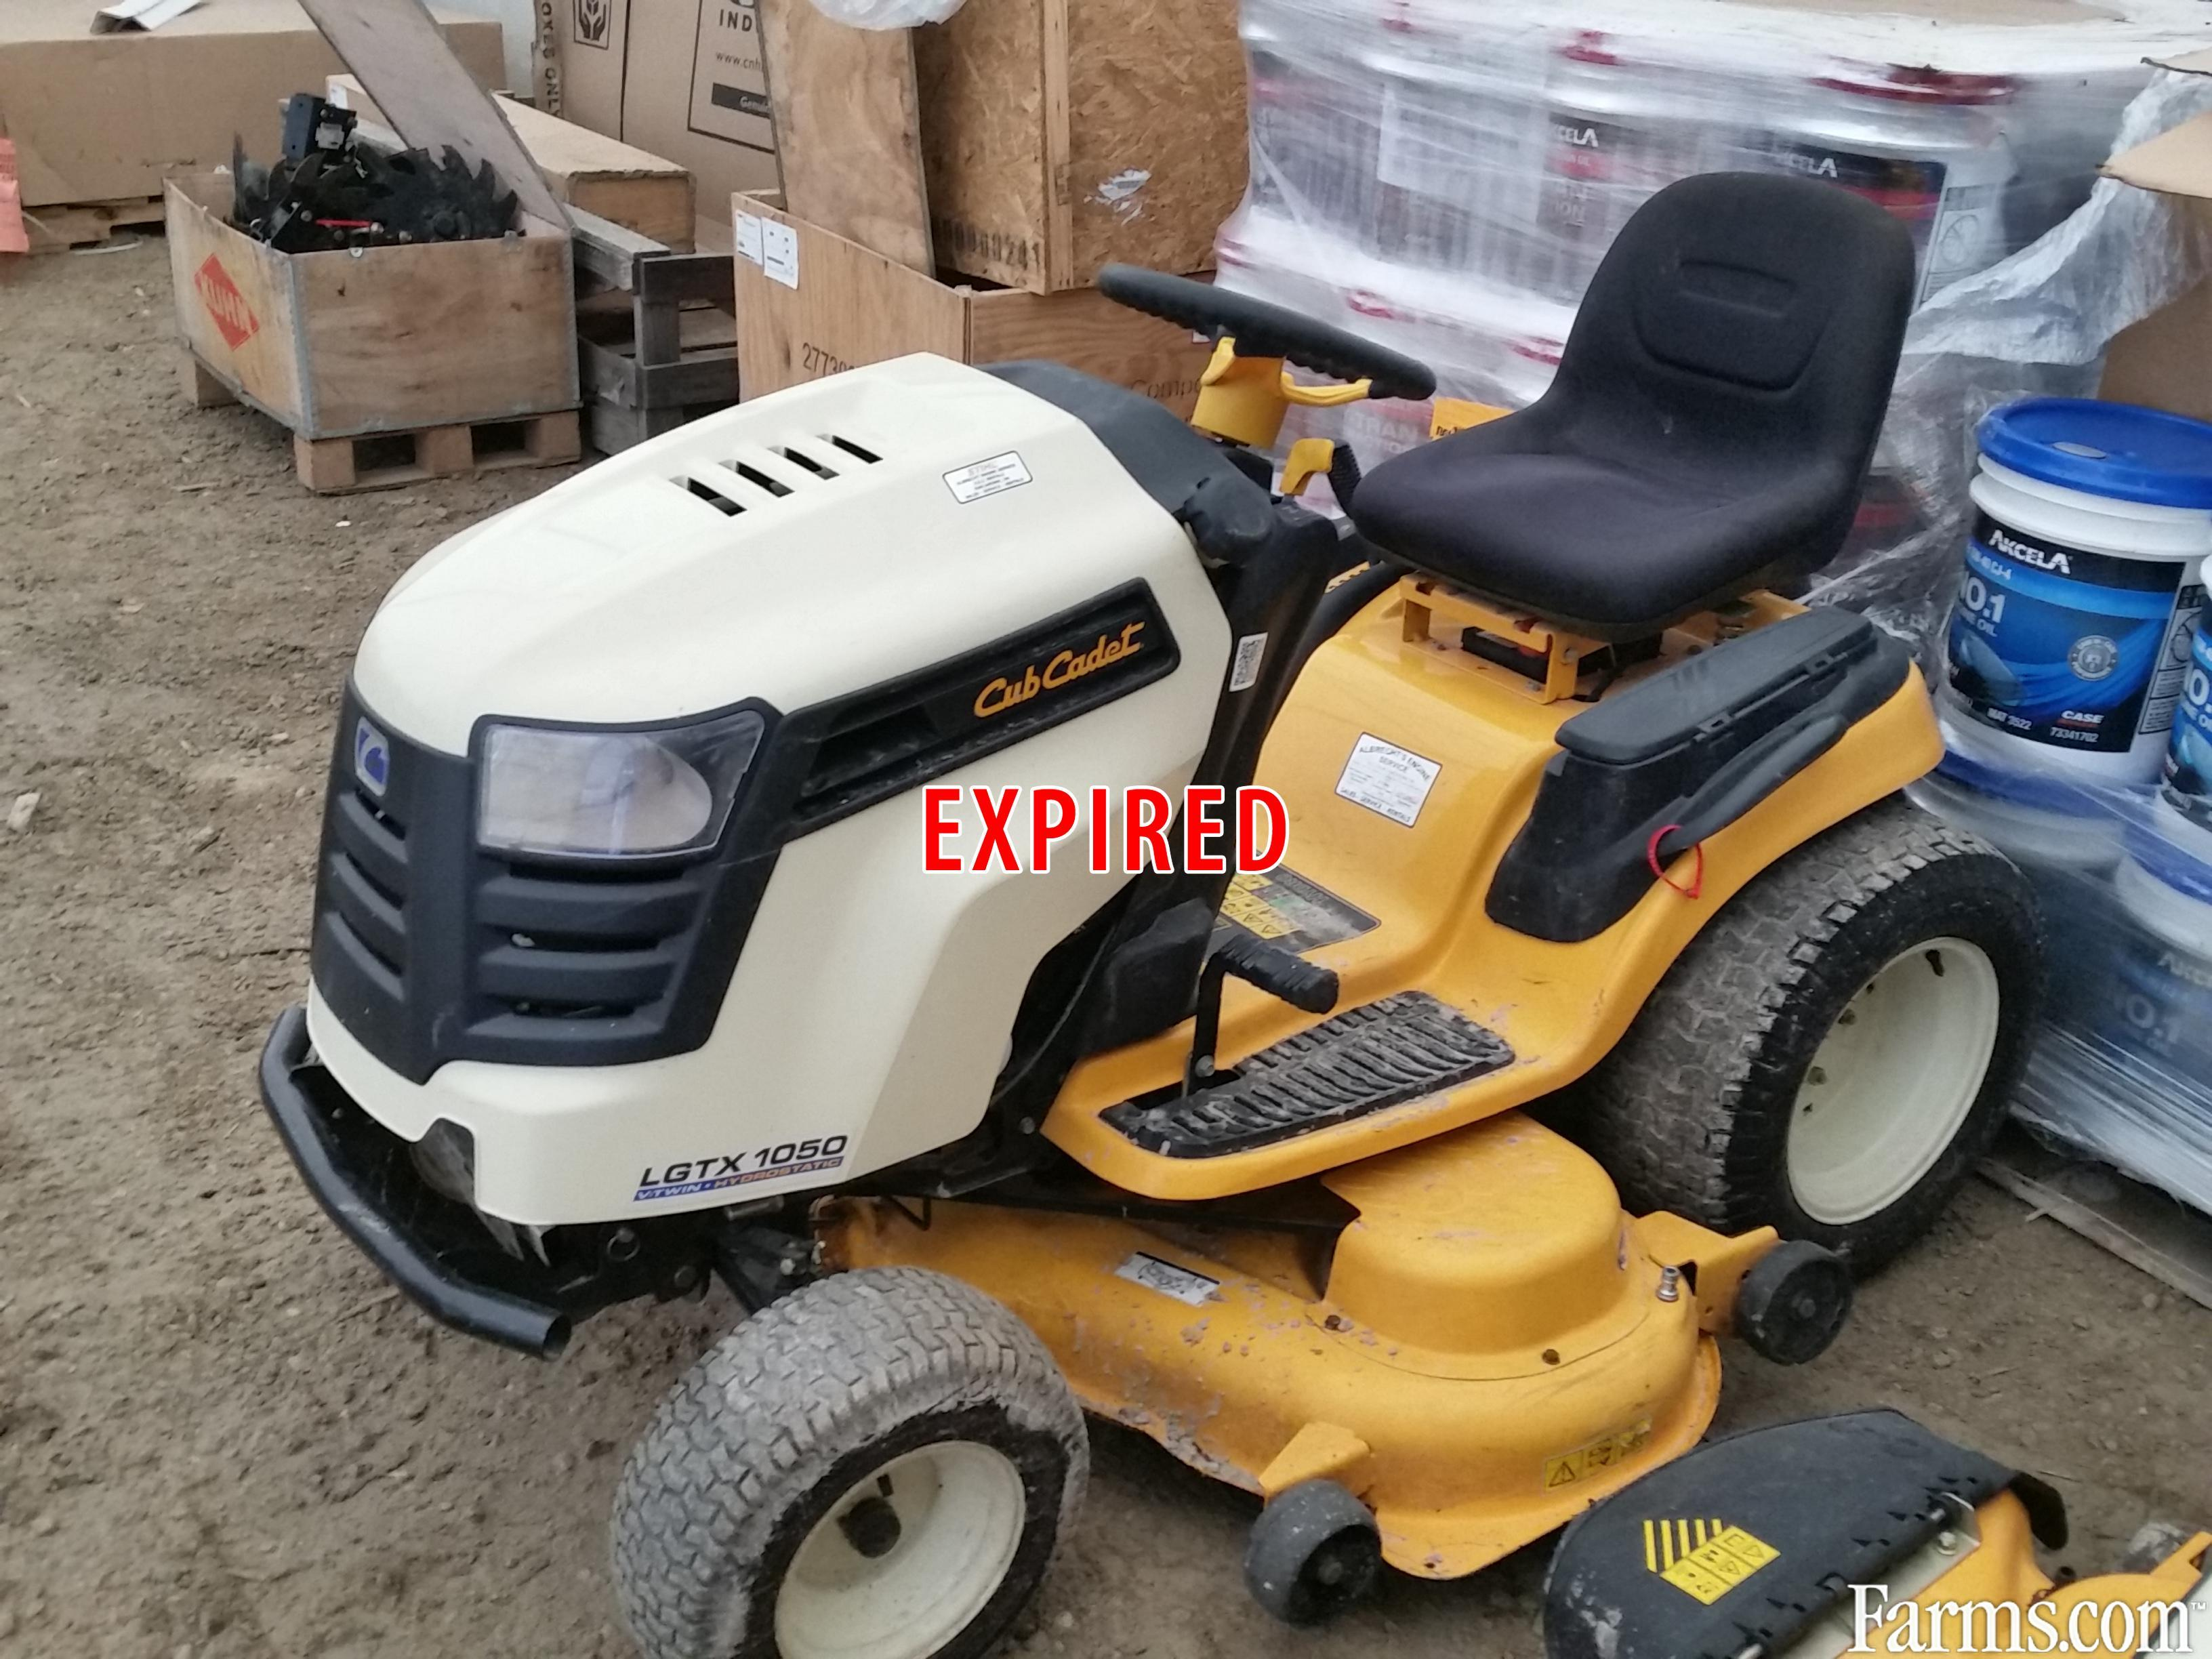 Cub Cadet Lawn Mowers Dealers : Cub cadet lgtx riding lawn mower for sale farms